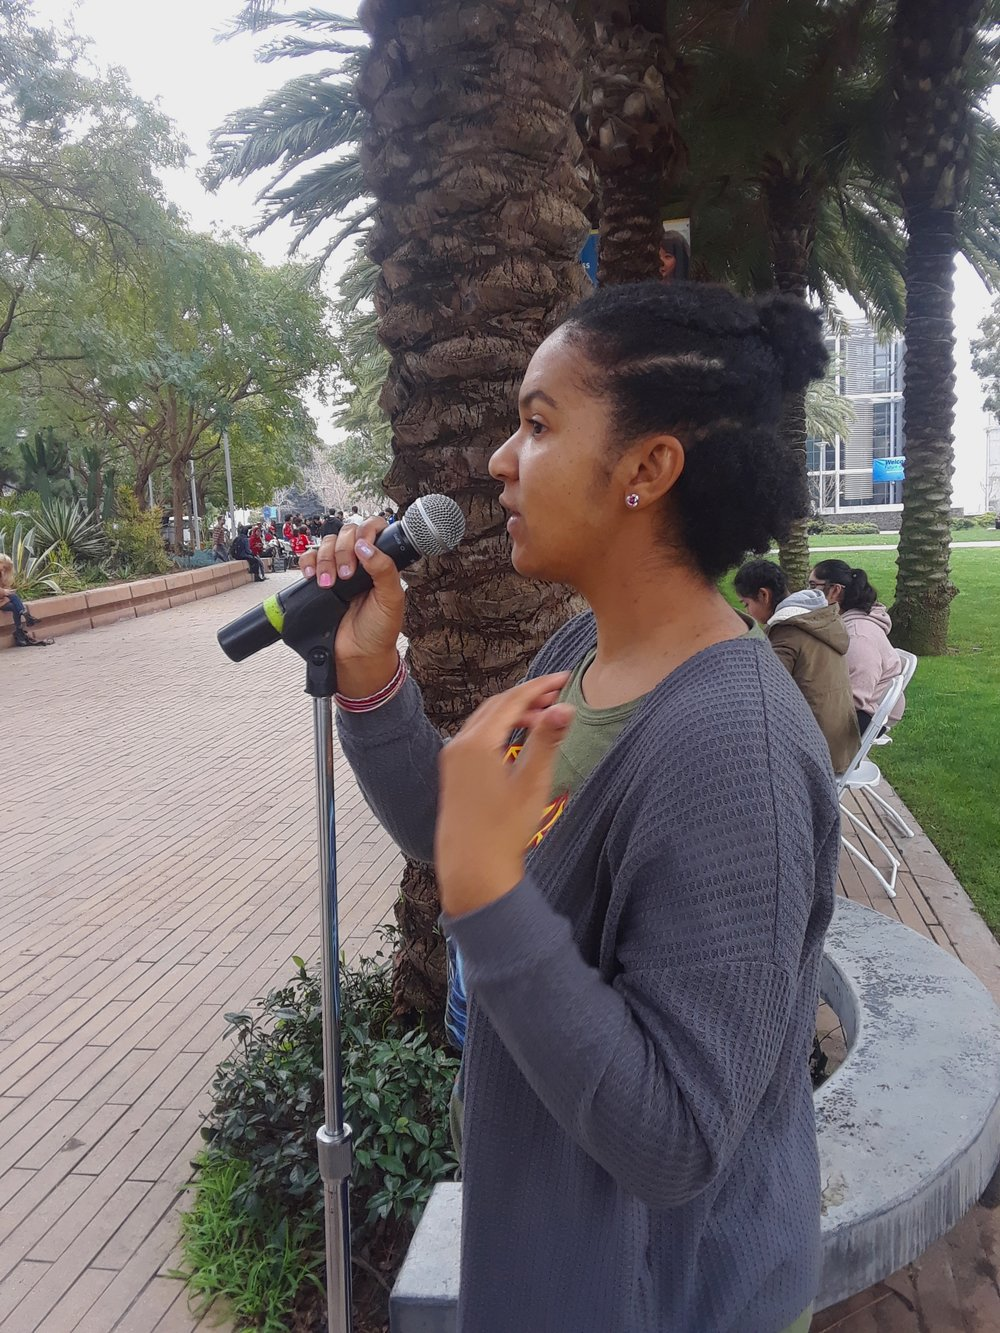 Santa Monica College student Jabria Allen speaks about domestic violence on Tuesday, March 5 in Santa Monica, California. Martha Ramirez/The Corsair